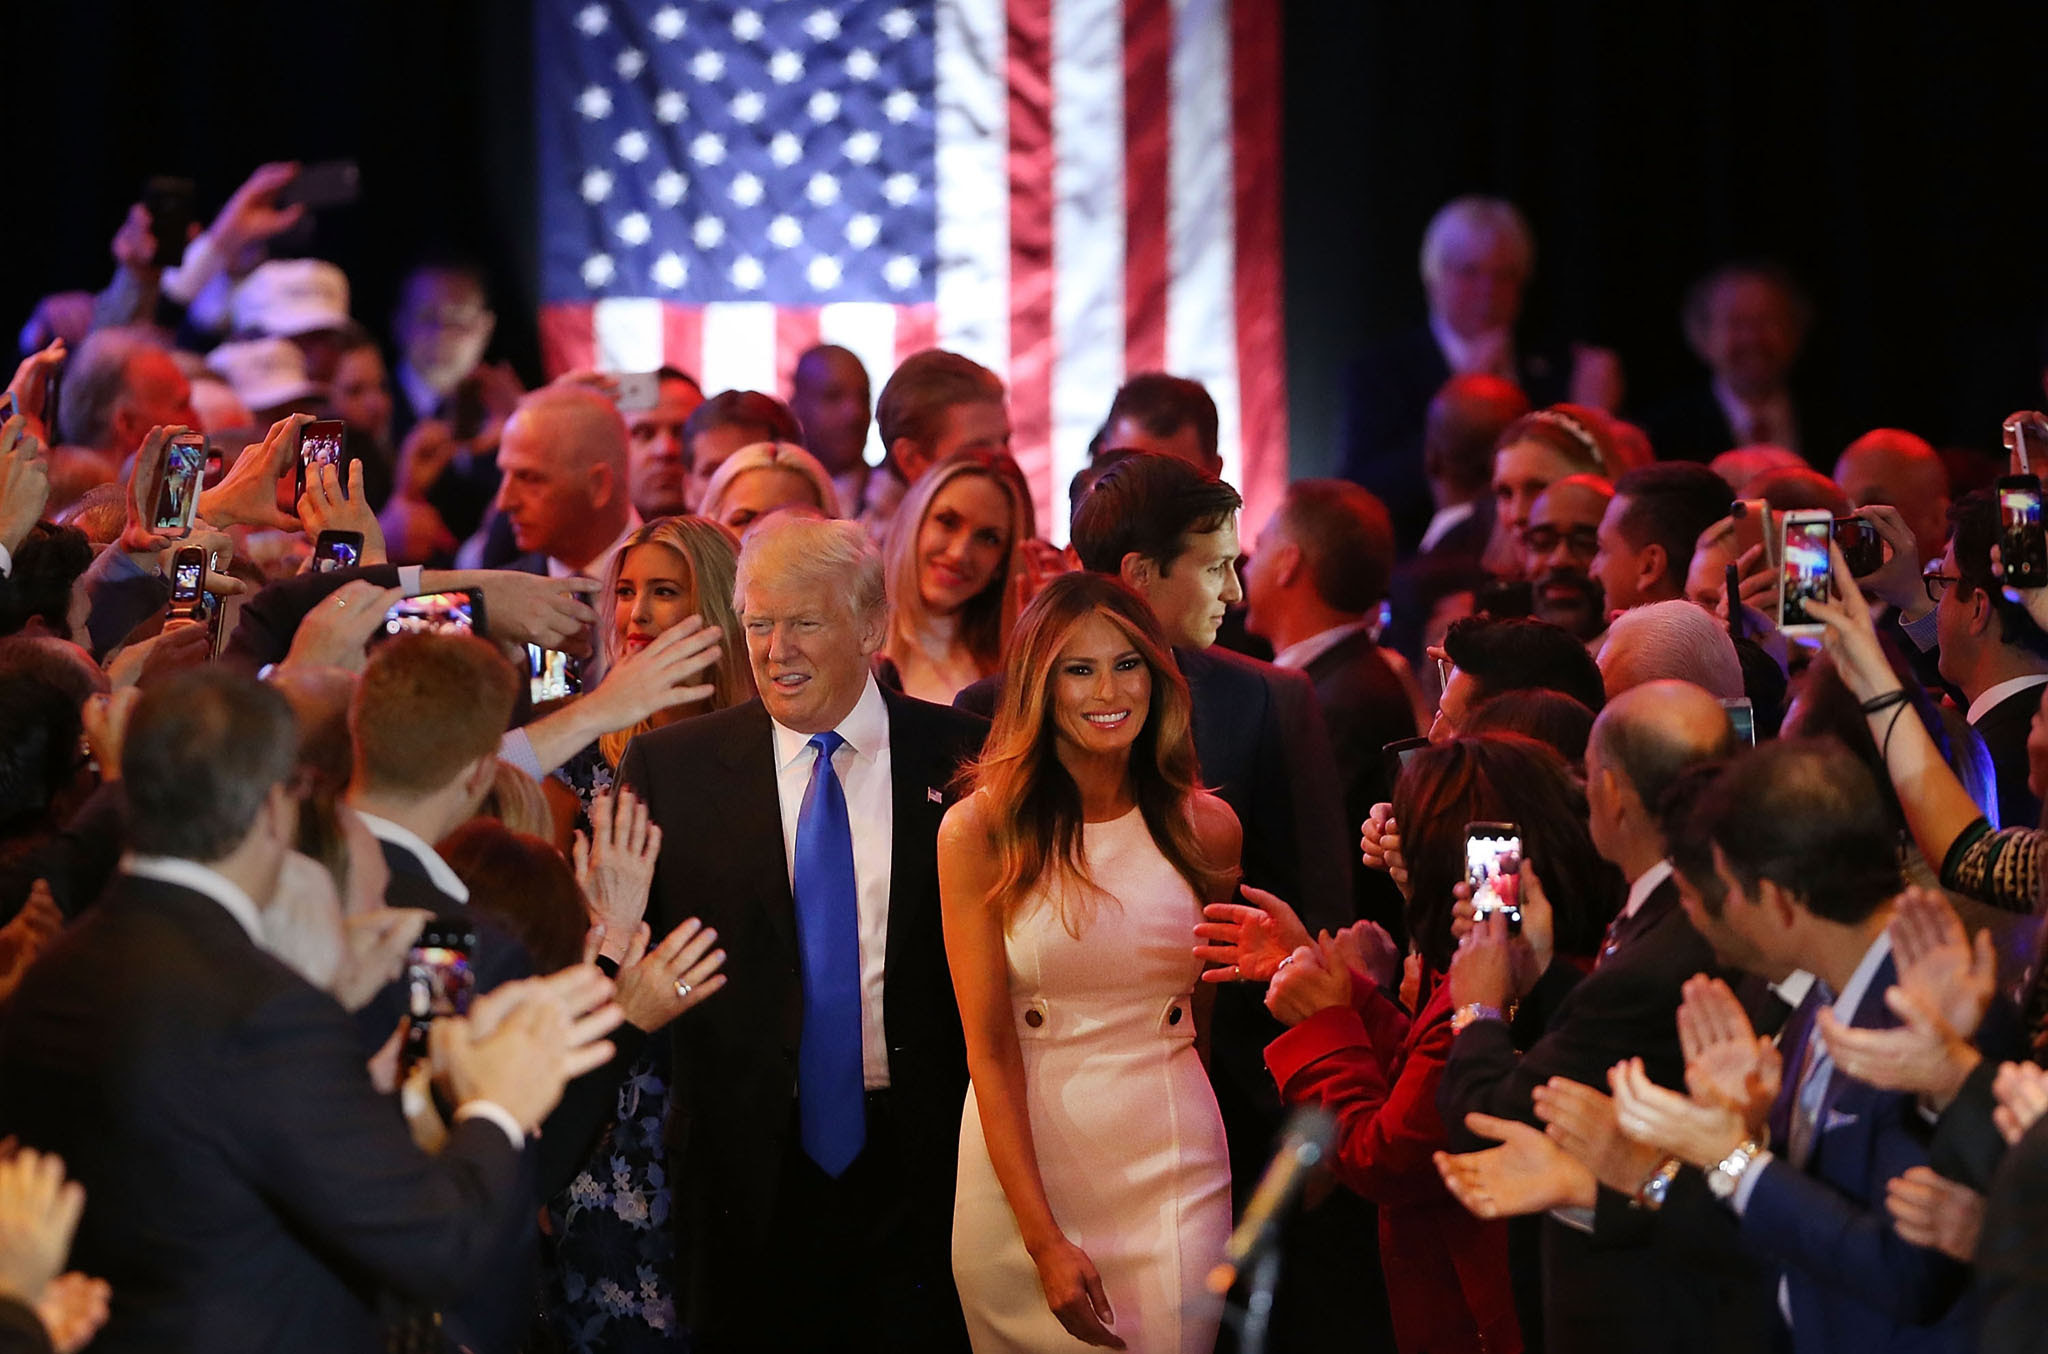 Republican presidential candidate Donald Trump and his wife Melania Trump arrive to speak to supporters at Trump Tower in Manhattan following his victory in the Indiana primary